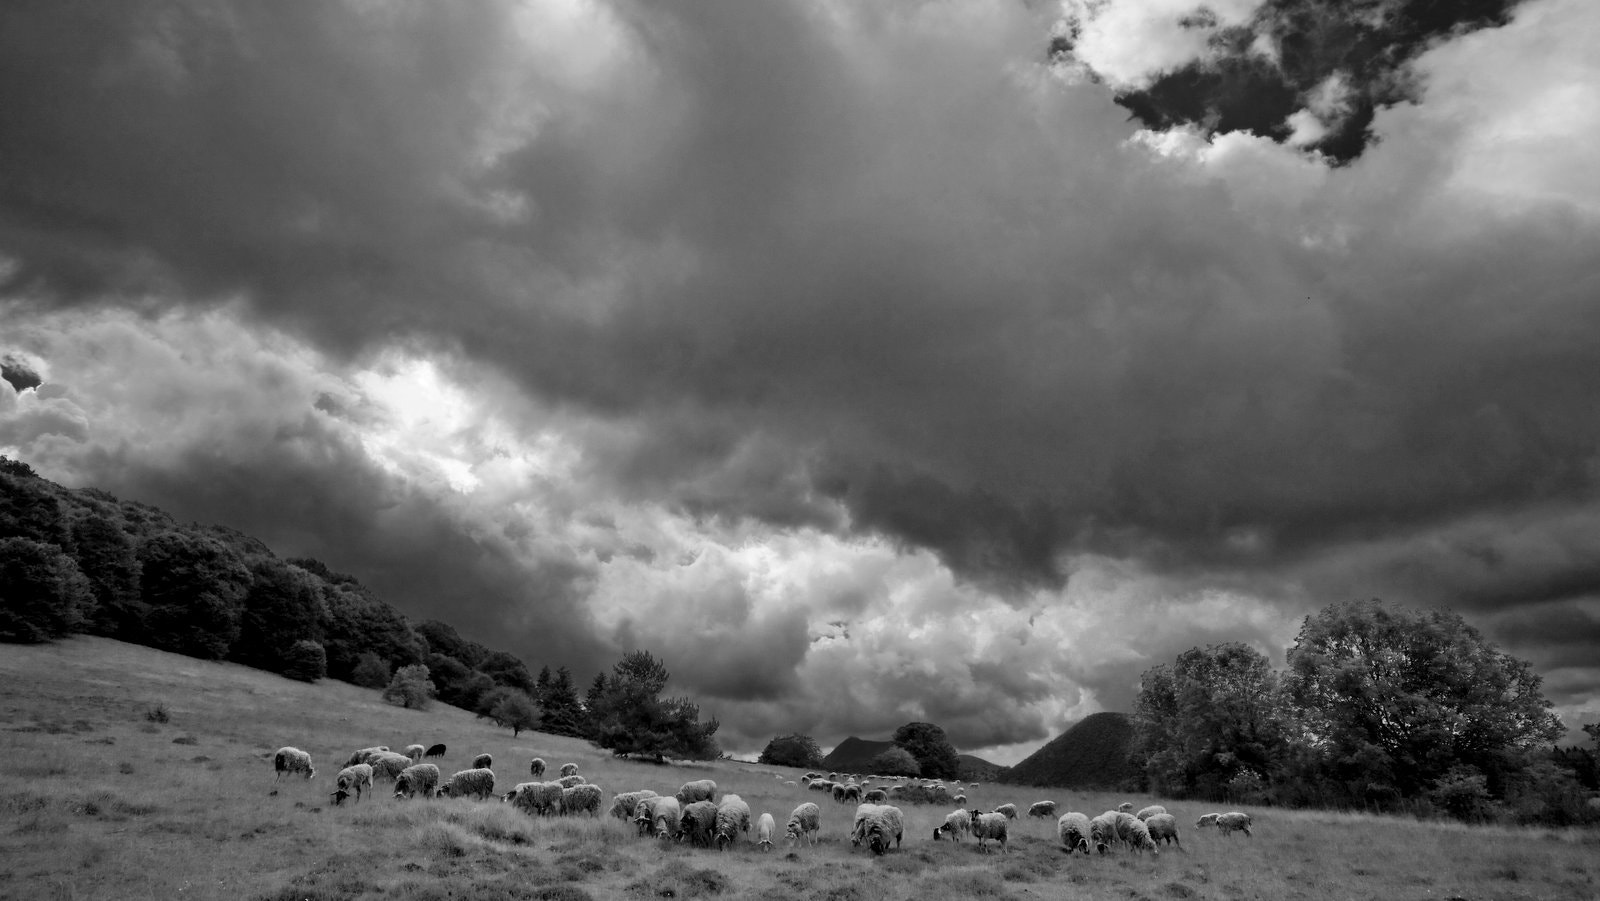 Photograph Sheeps on volcan side, Auvergne, France by josselin breugnot on 500px